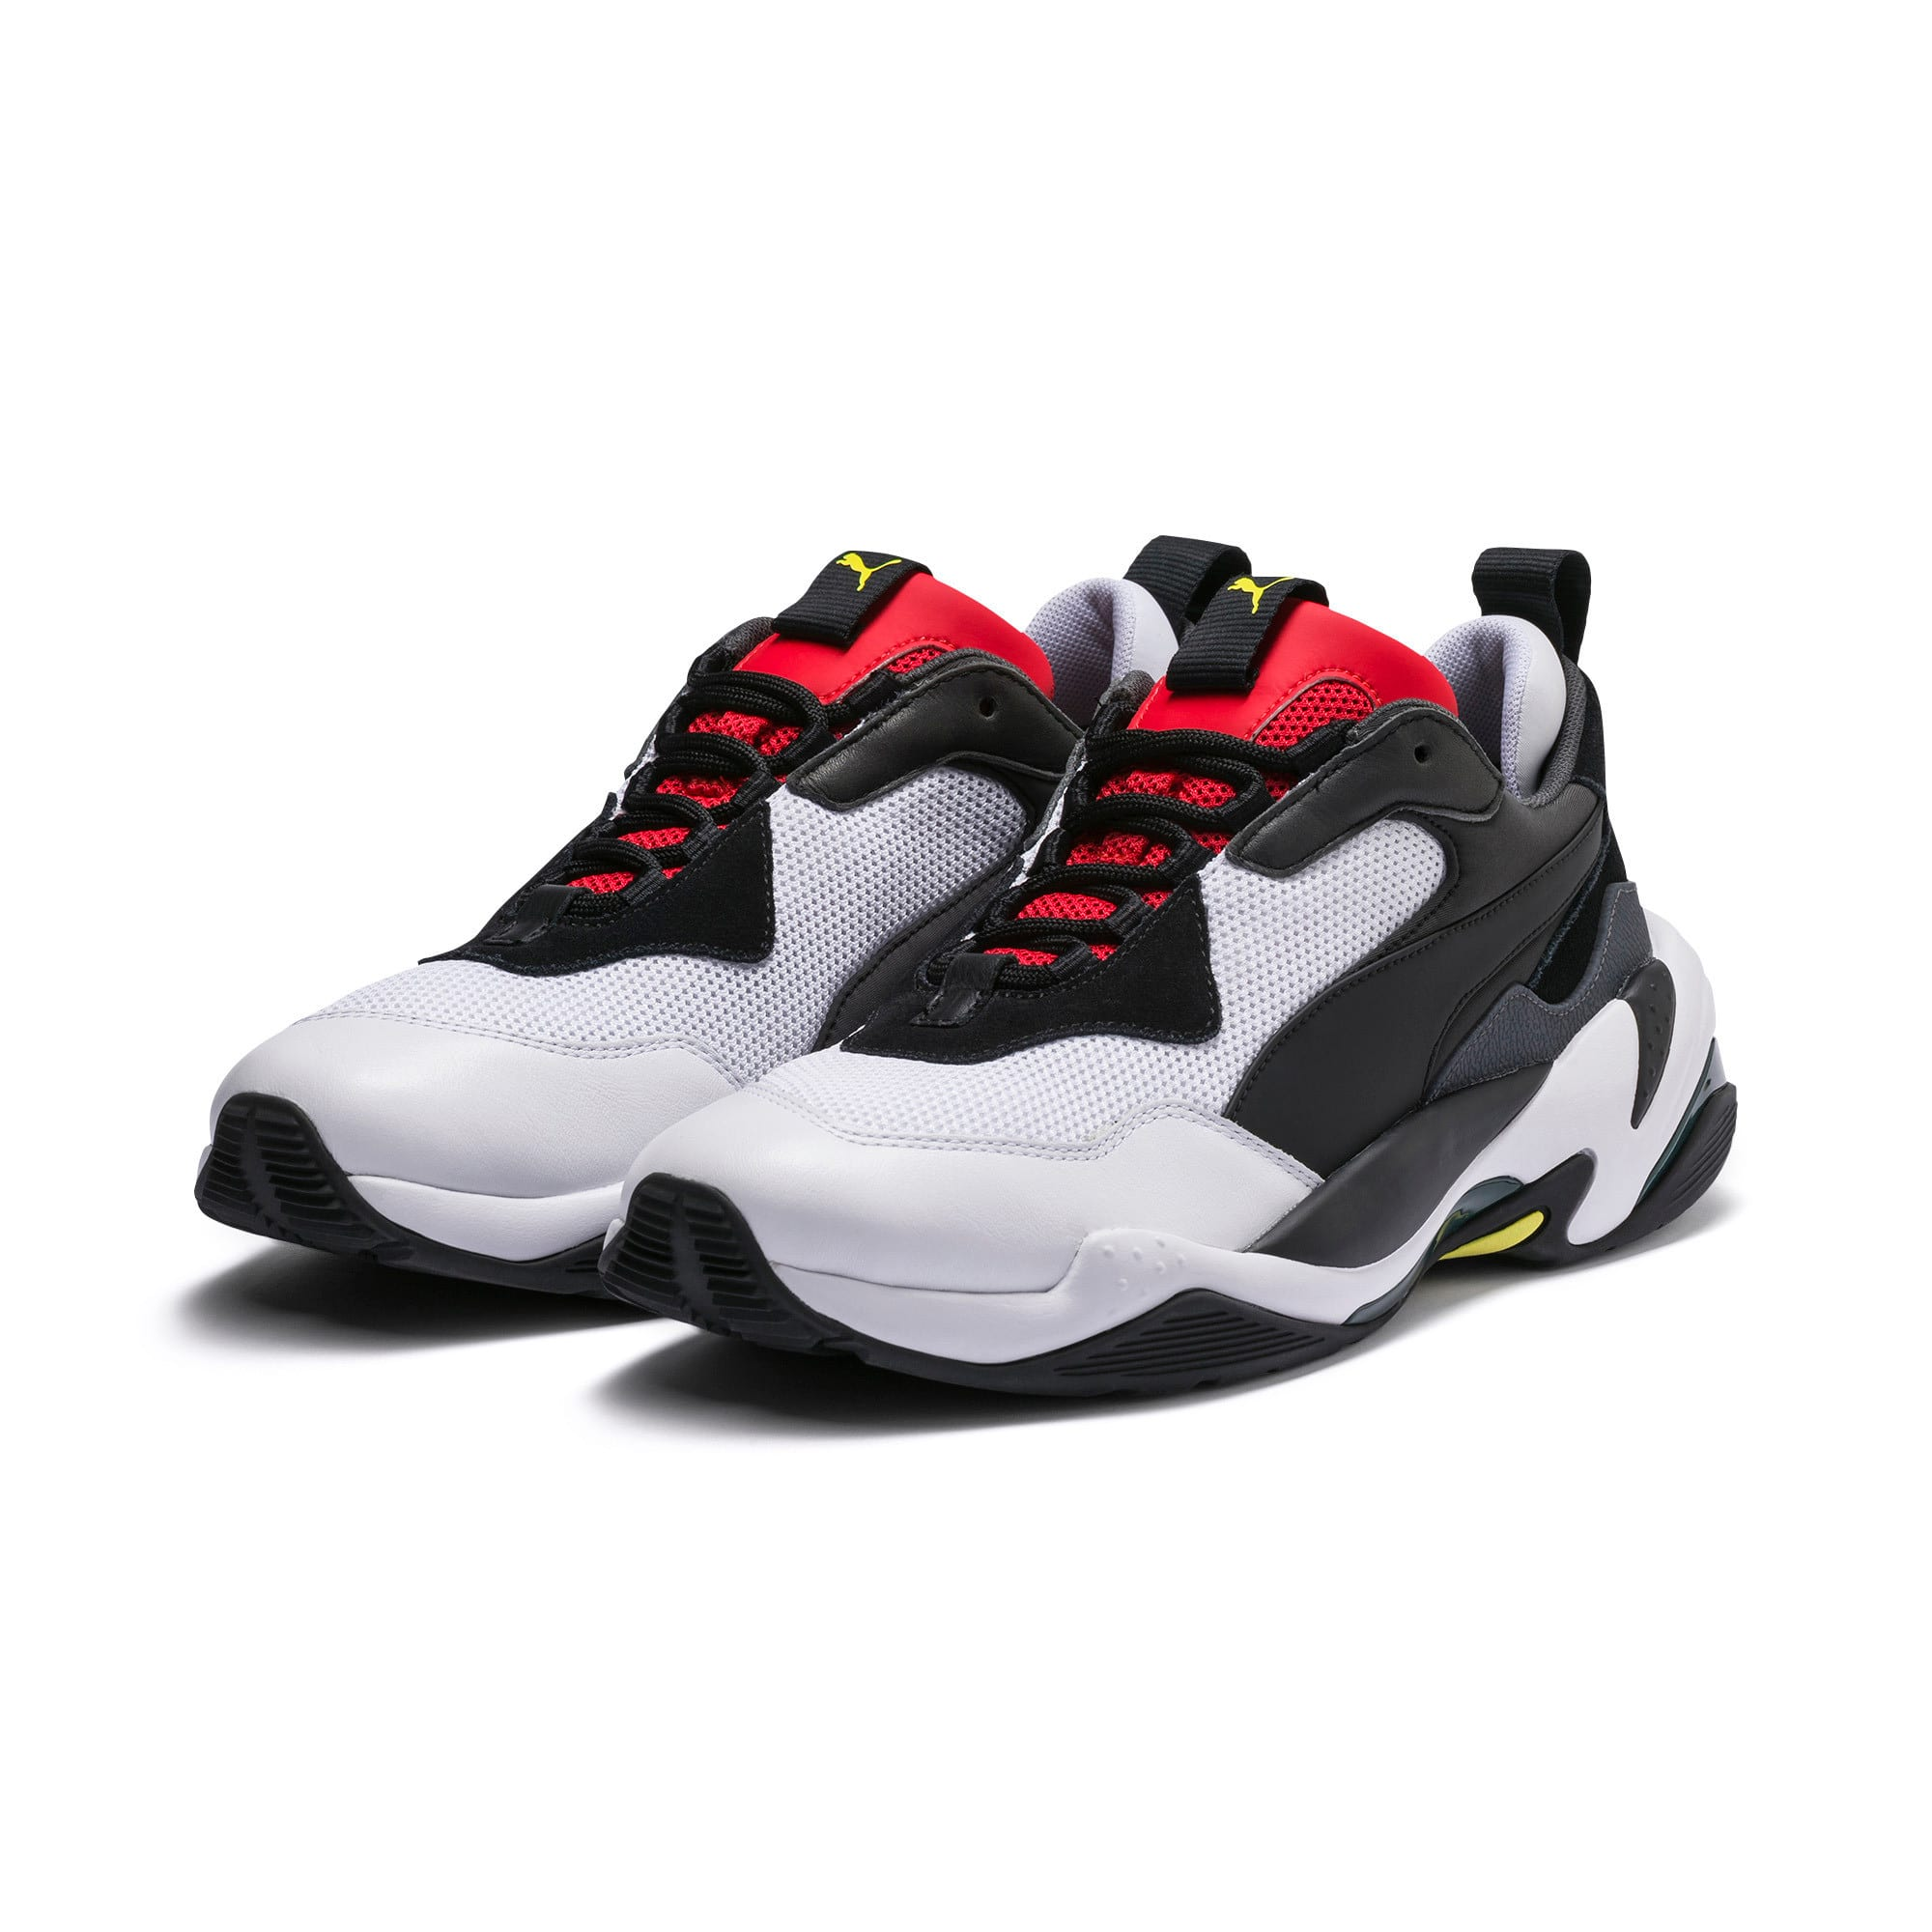 Thumbnail 2 of Thunder Spectra Trainers, Puma Black-High Risk Red, medium